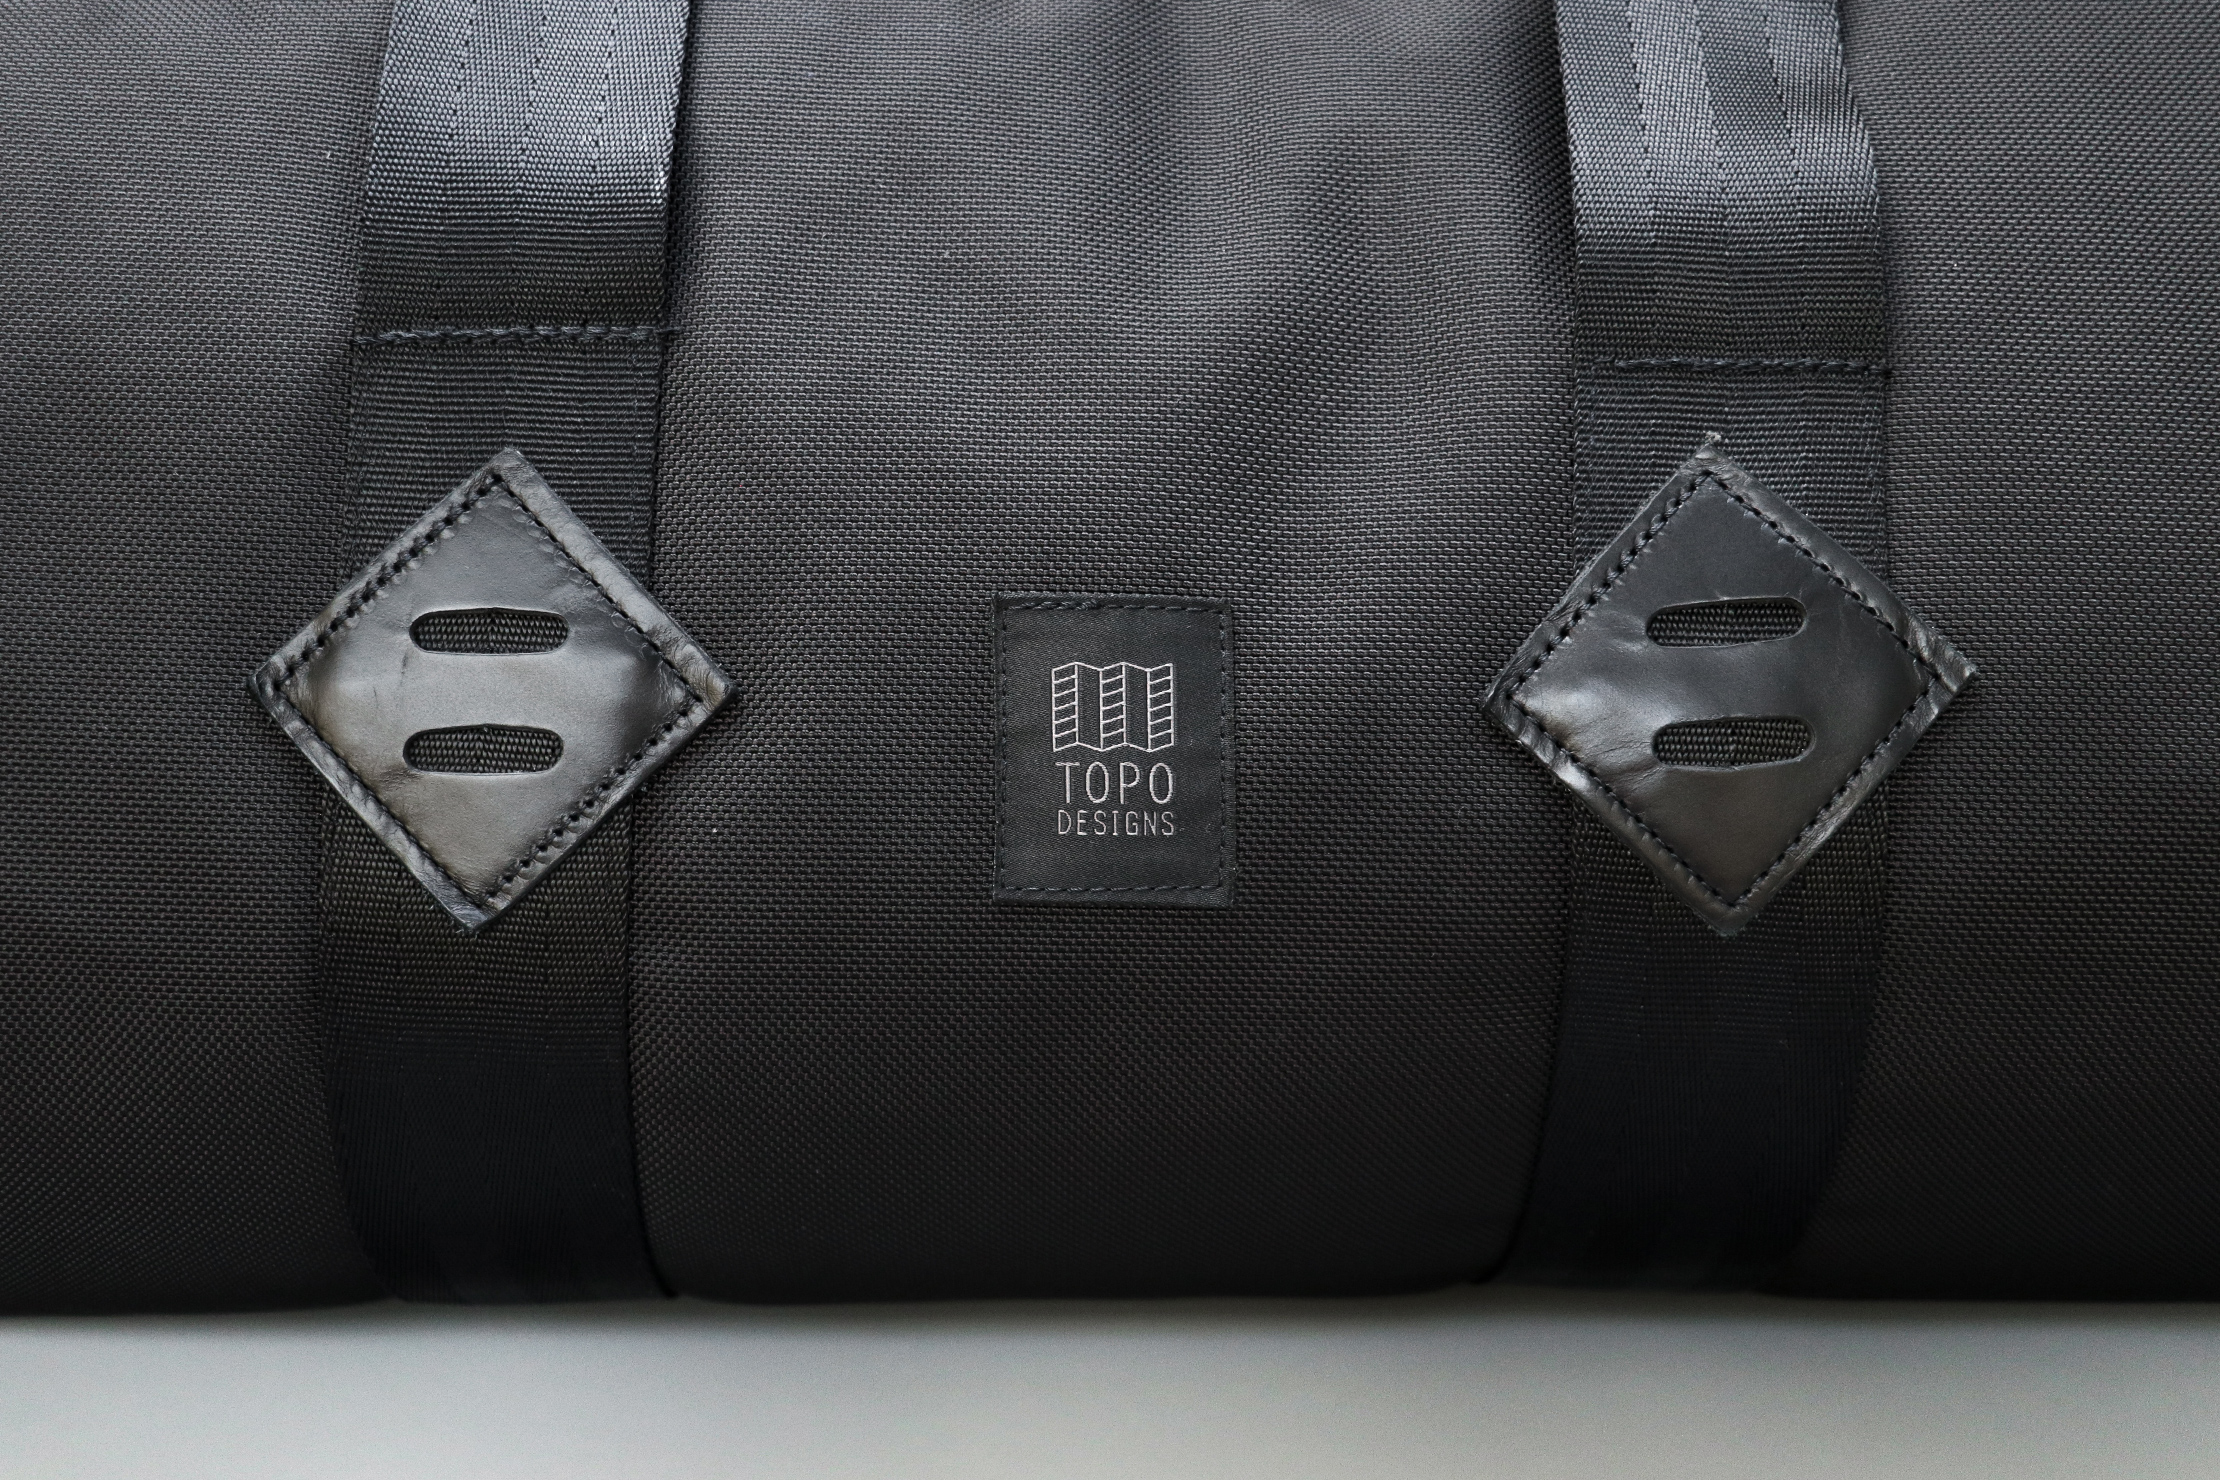 Topo Designs Classic Duffel Logo And Leather Accents